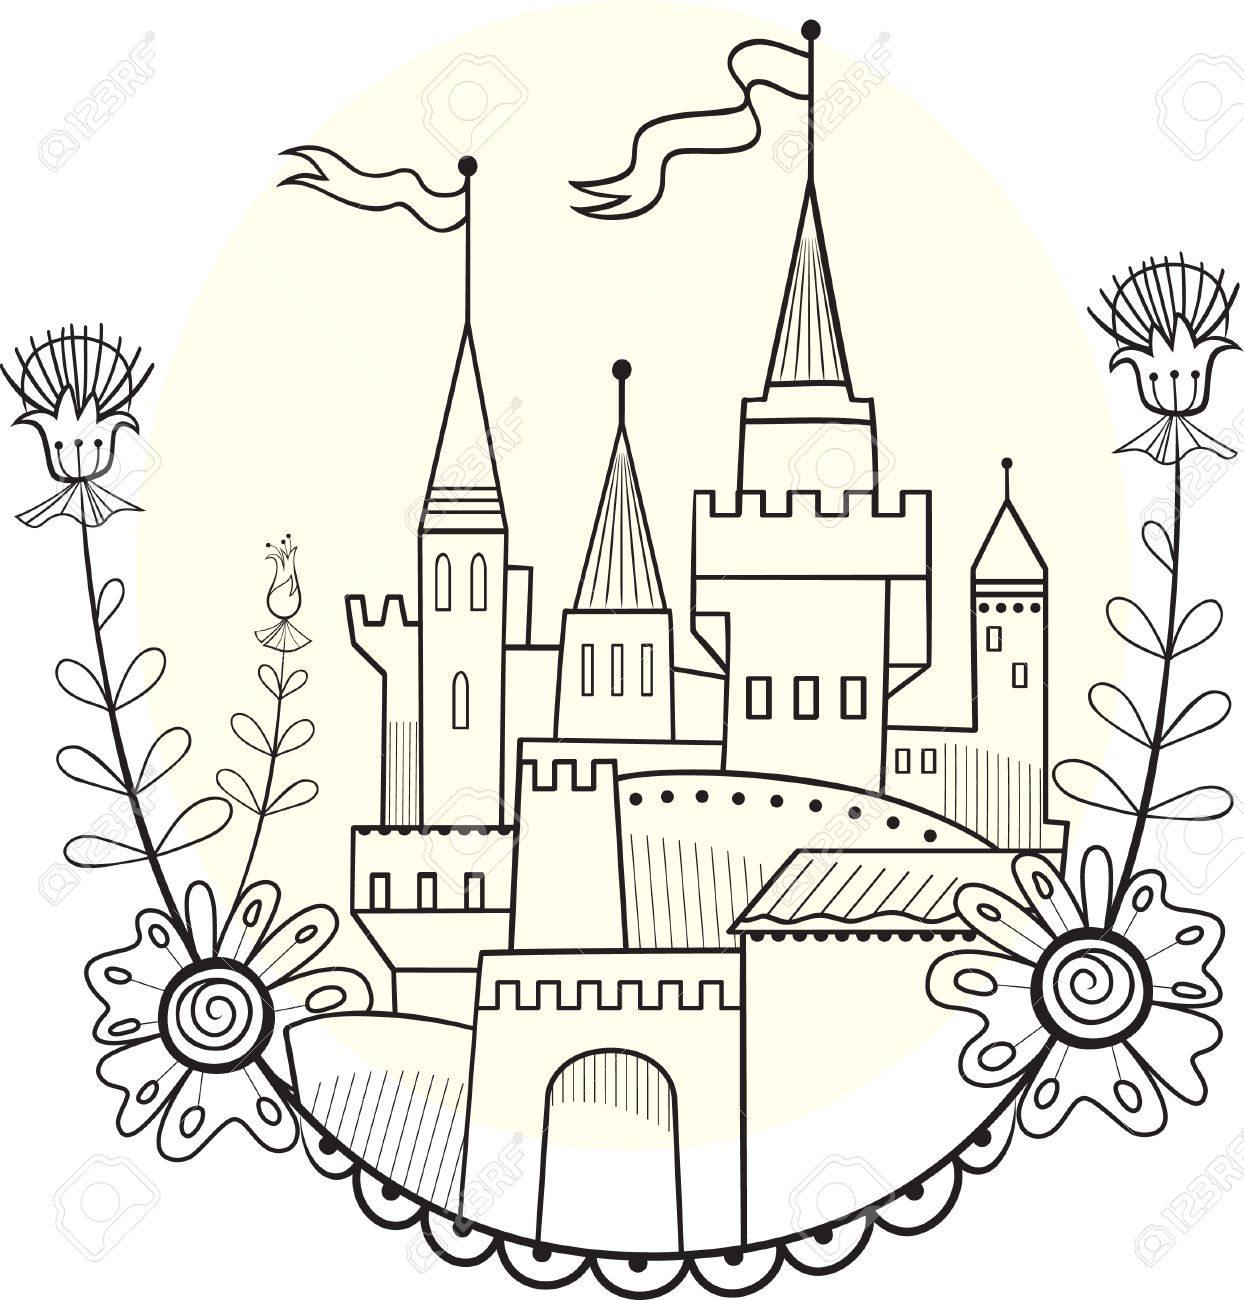 figure fairytale castle linear solution for coloring royalty free